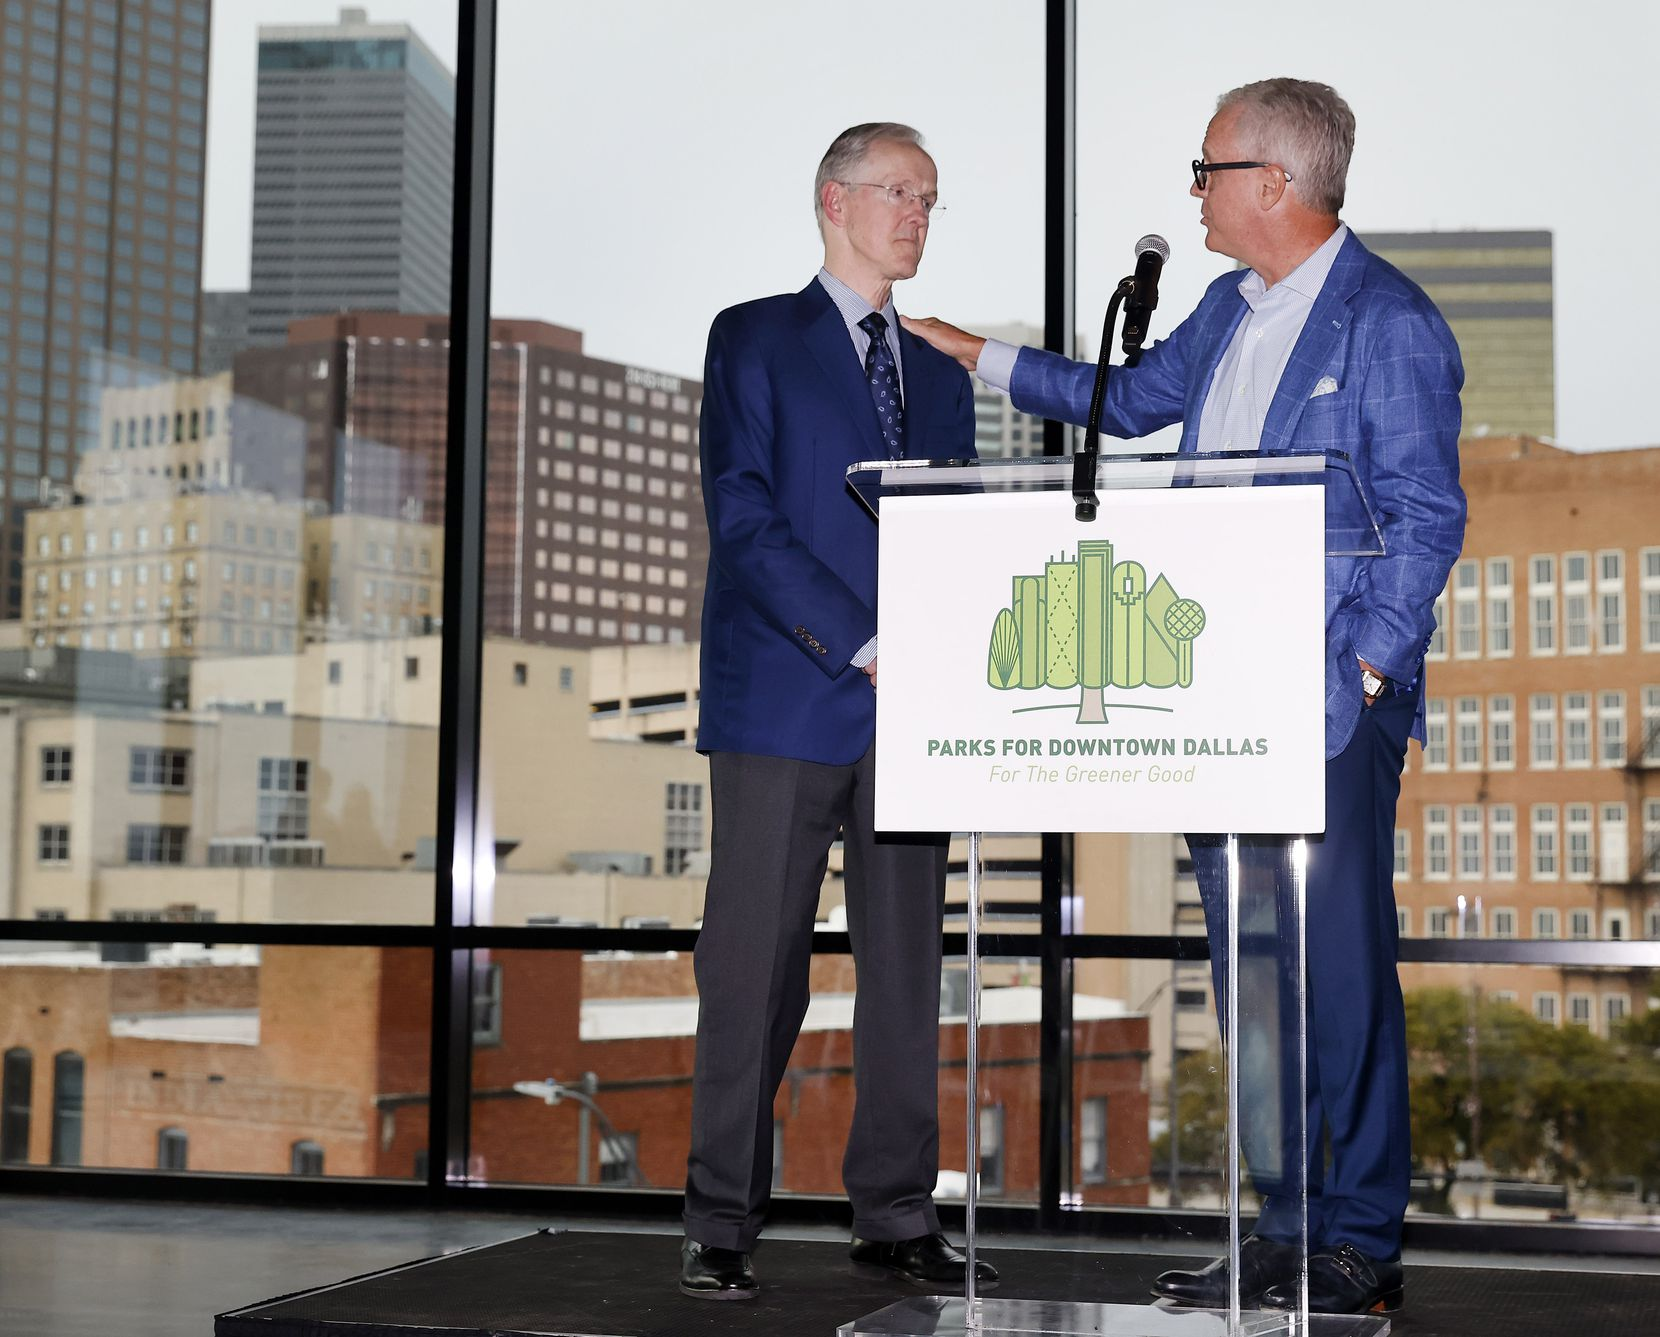 During Tuesday's ceremonial groundbreaking, East Quarter developer Shawn Todd, right, recognized the contributions Robert W. Decherd, the chairman of Parks for Downtown Dallas, has made to the city's core over the past 40 years.